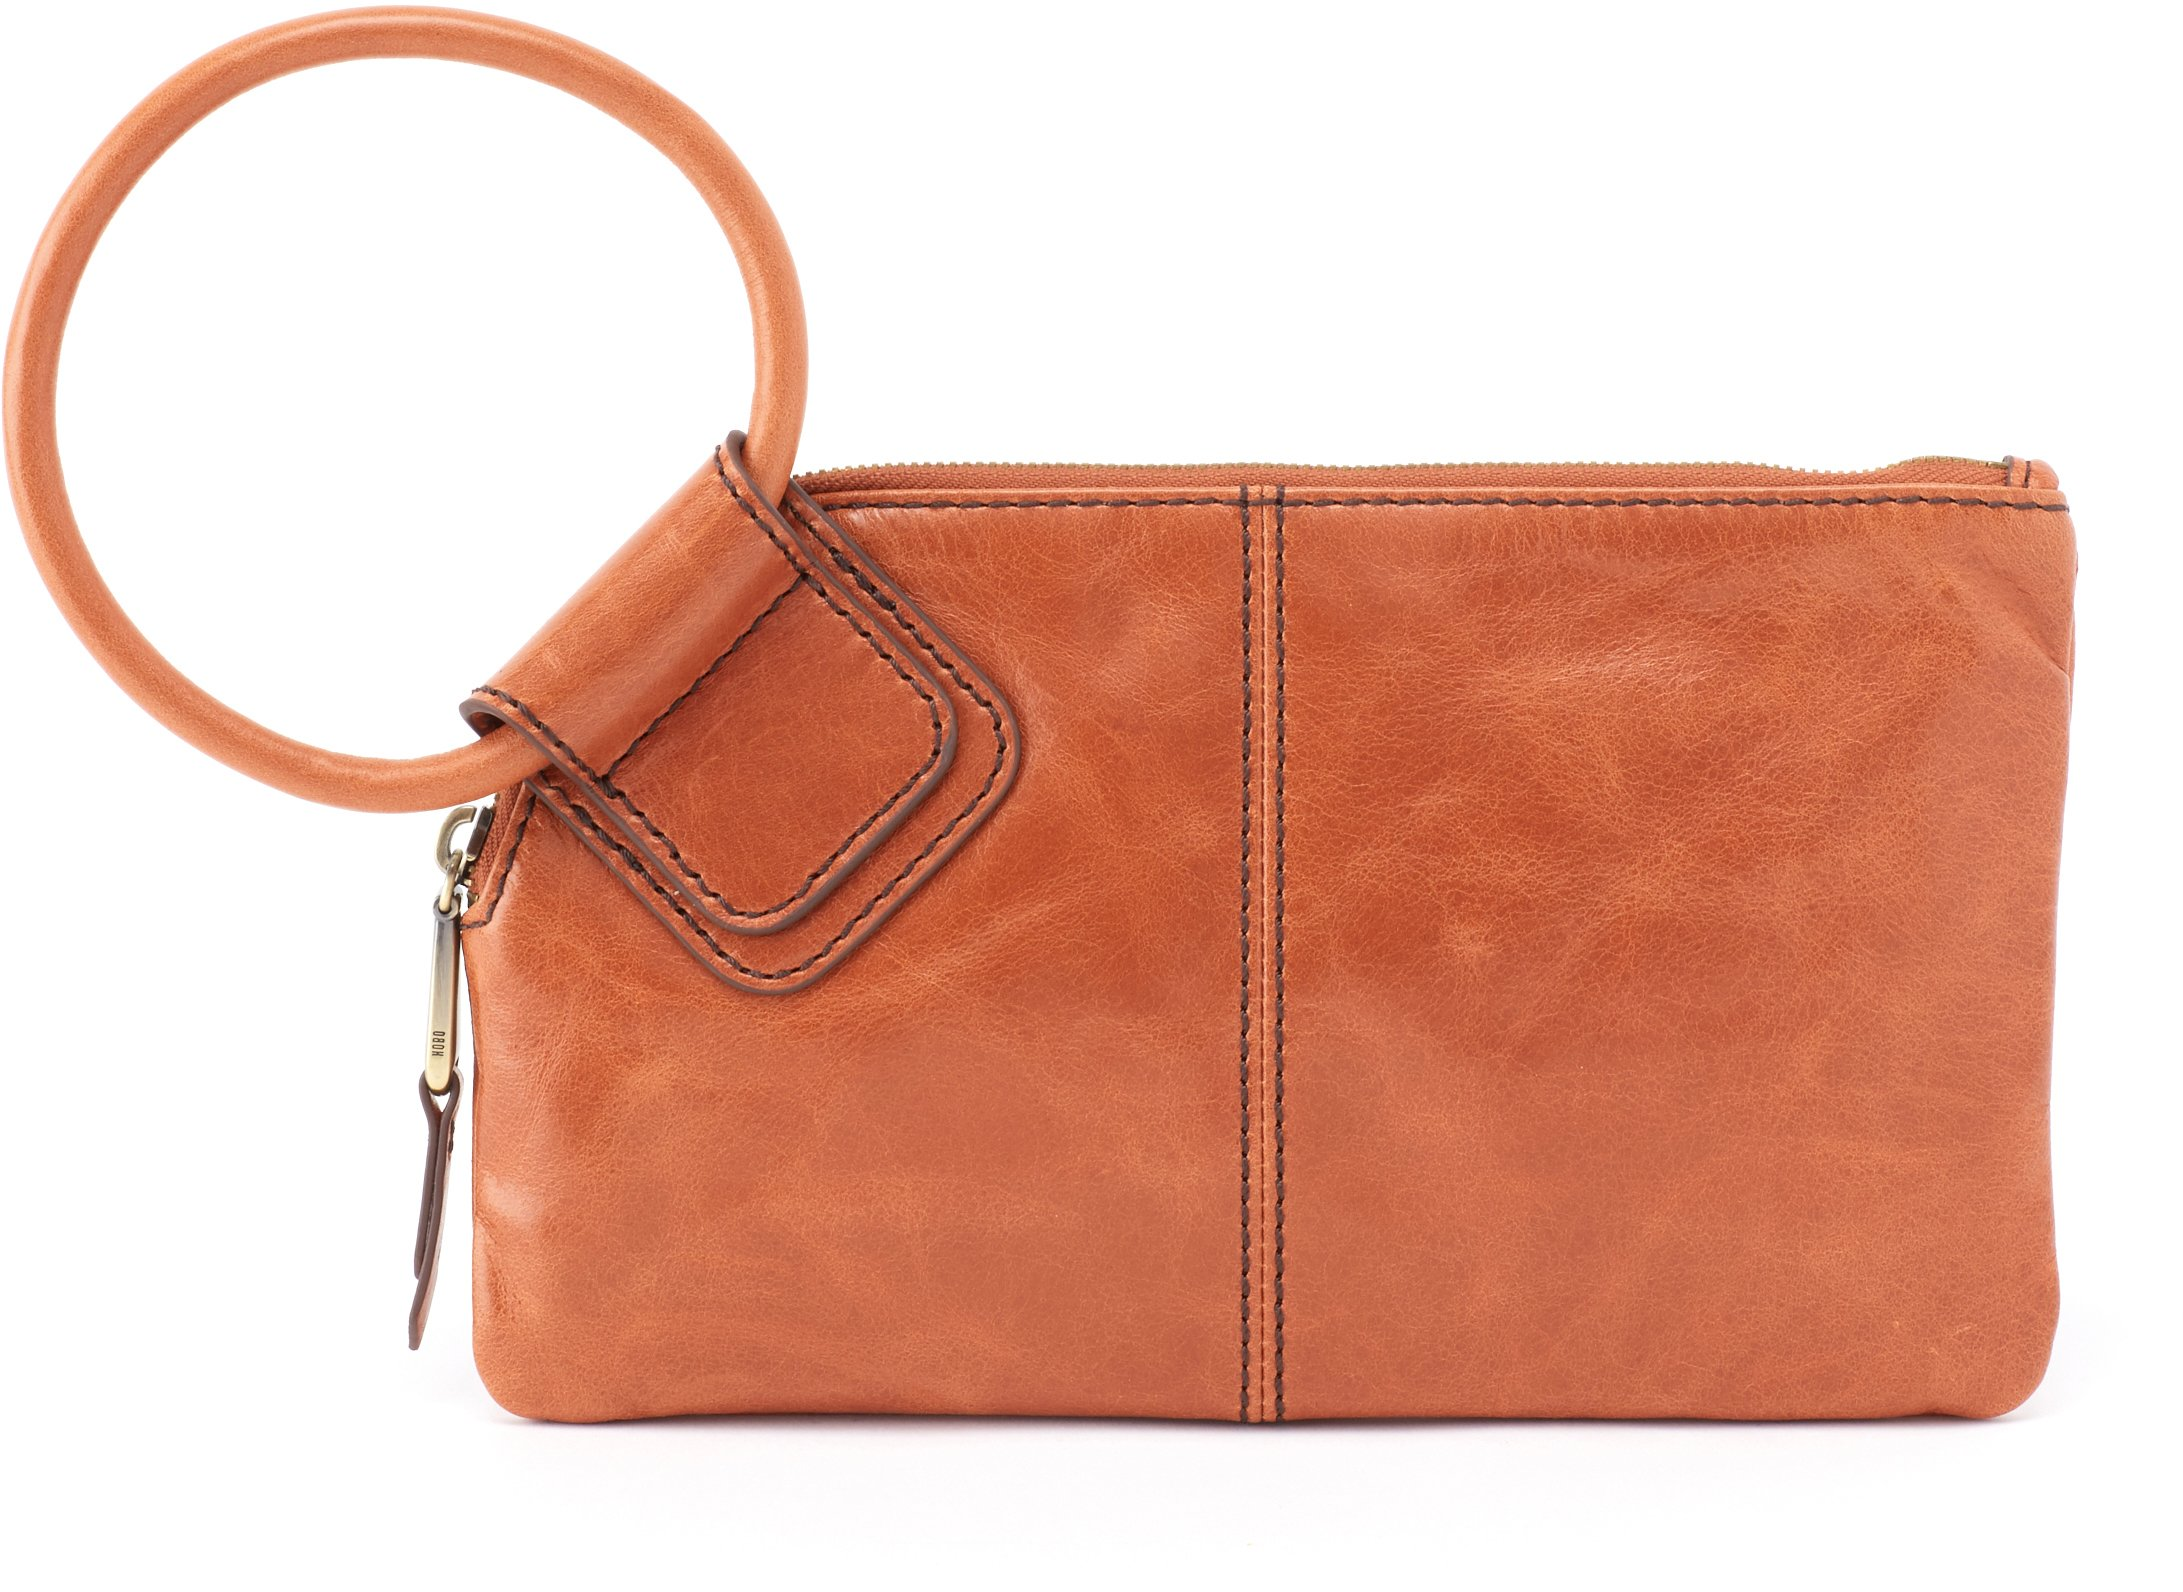 Hobo Women's Leather Sable Wristlet Clutch Wallet (Clay)